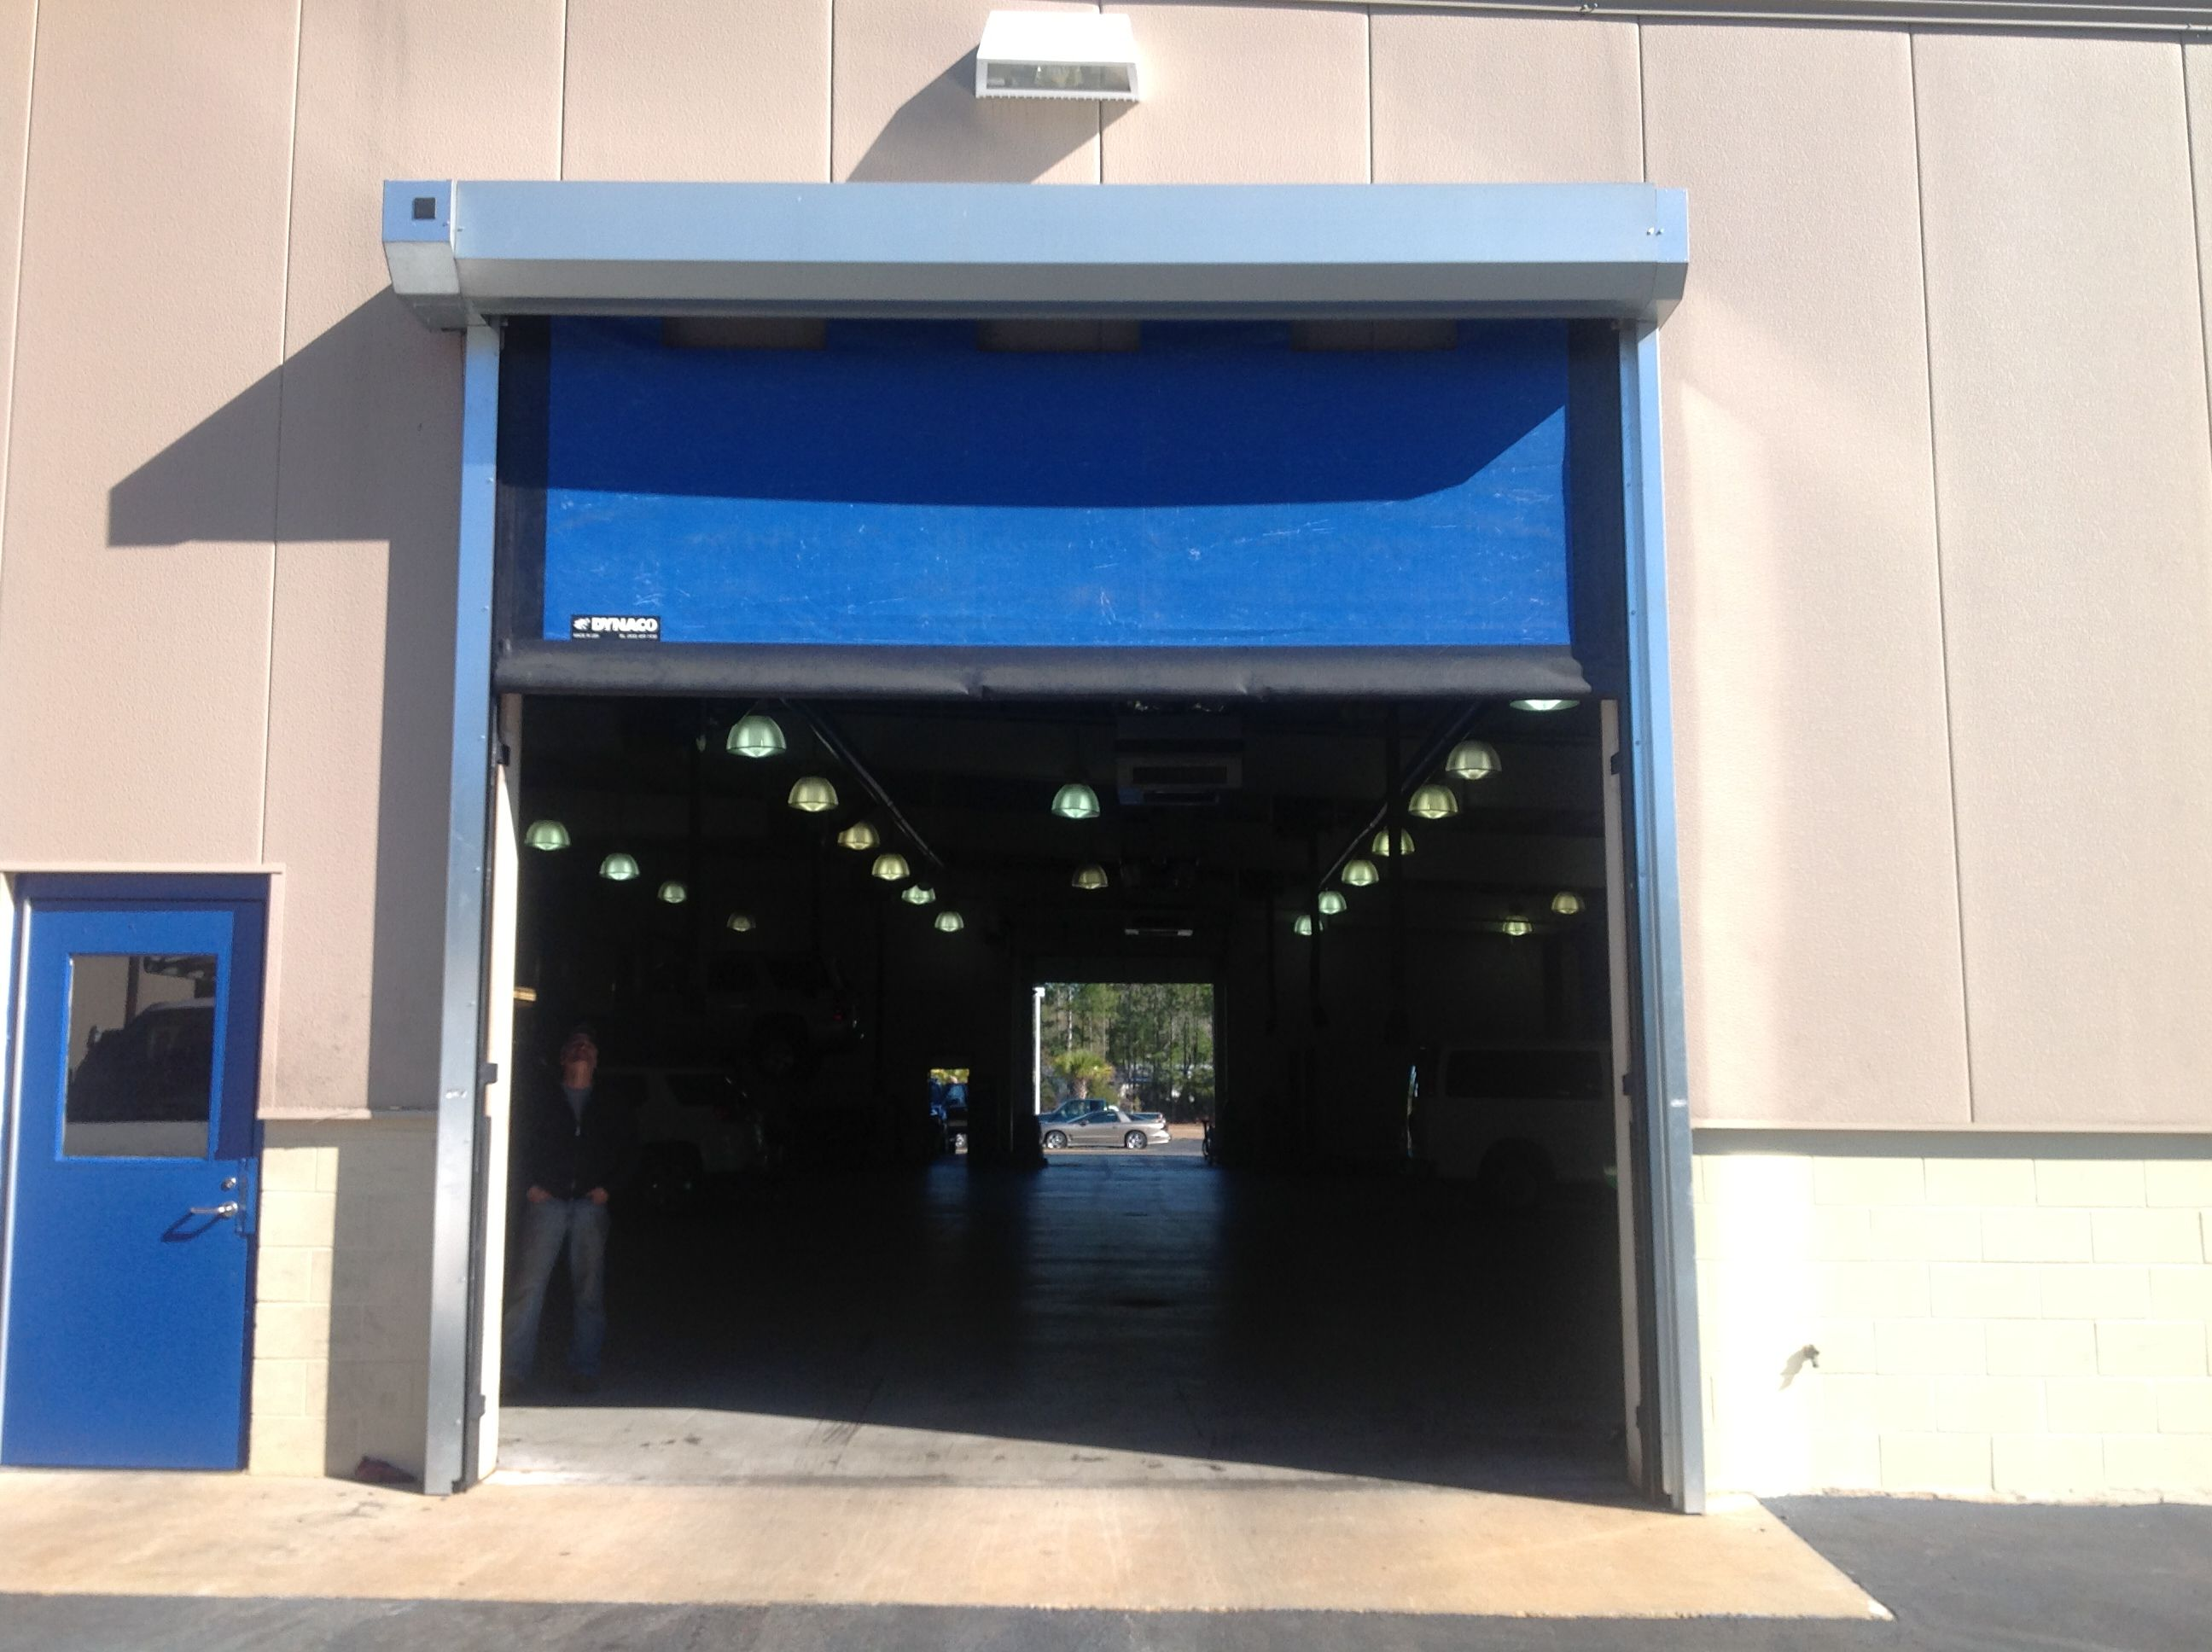 Dynaco Doors Exterior Mounted High Speed We sell and install Dynaco Doors .warehousecubed.com & Dynaco Doors Exterior Mounted High Speed We sell and install Dynaco ...